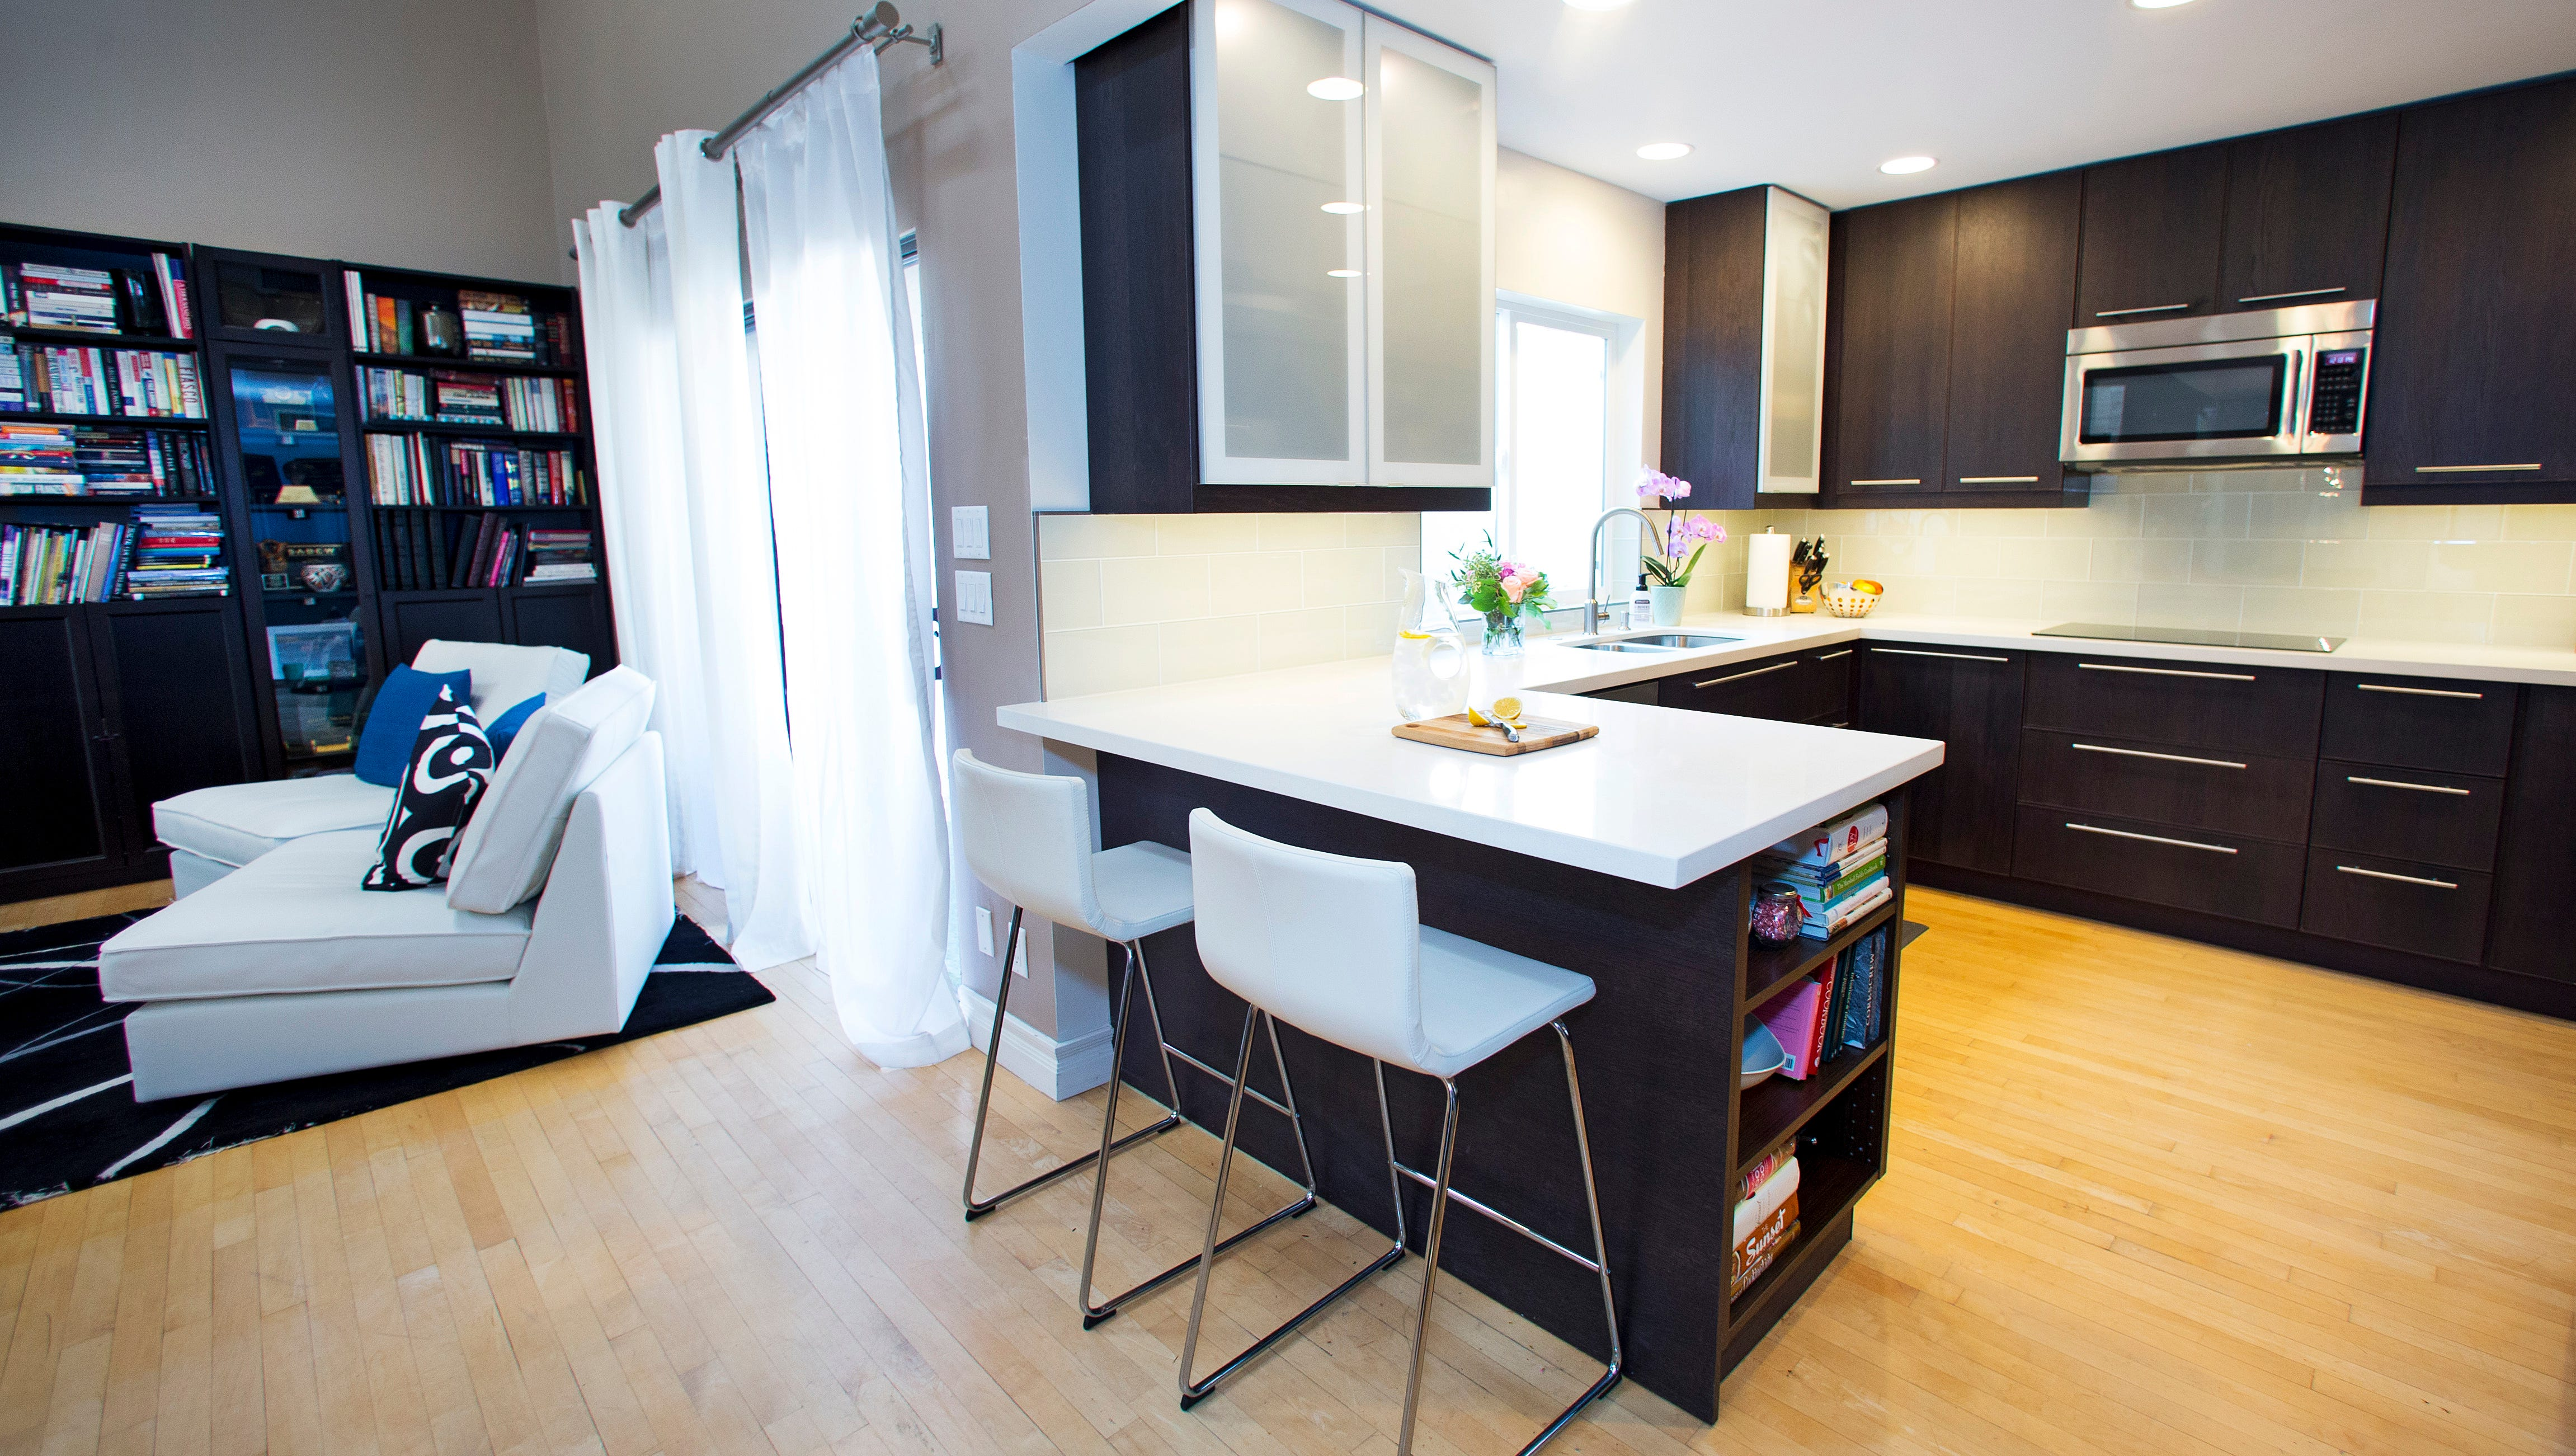 I Spent 35 000 Remodeling My Kitchen And Here Are 10 Big